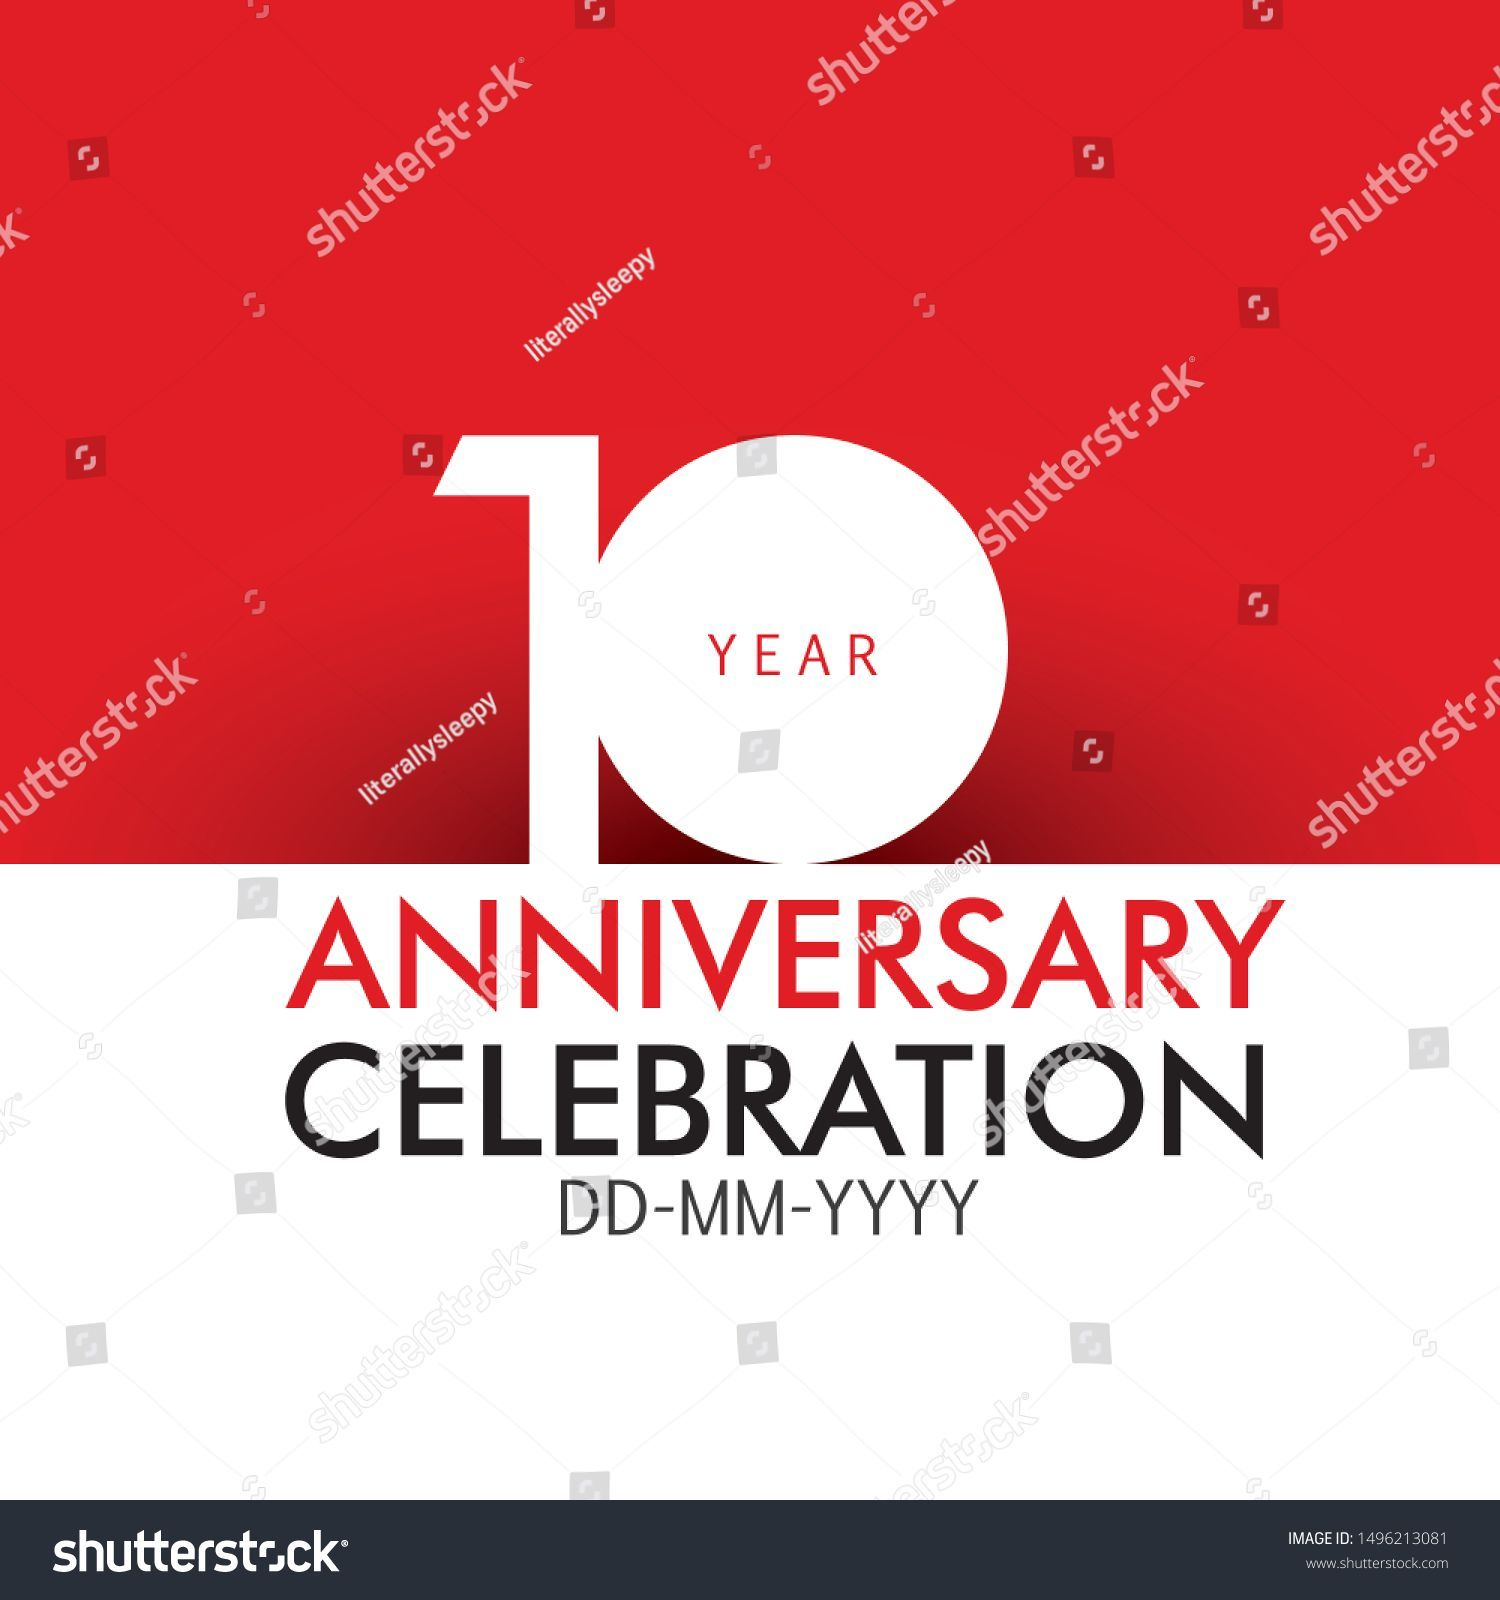 10 Year Anniversary Concept Red Color Stock Vector Royalty Free 1496213081 1496213081 Anniversary Color 10 Year Anniversary Year Anniversary Anniversary